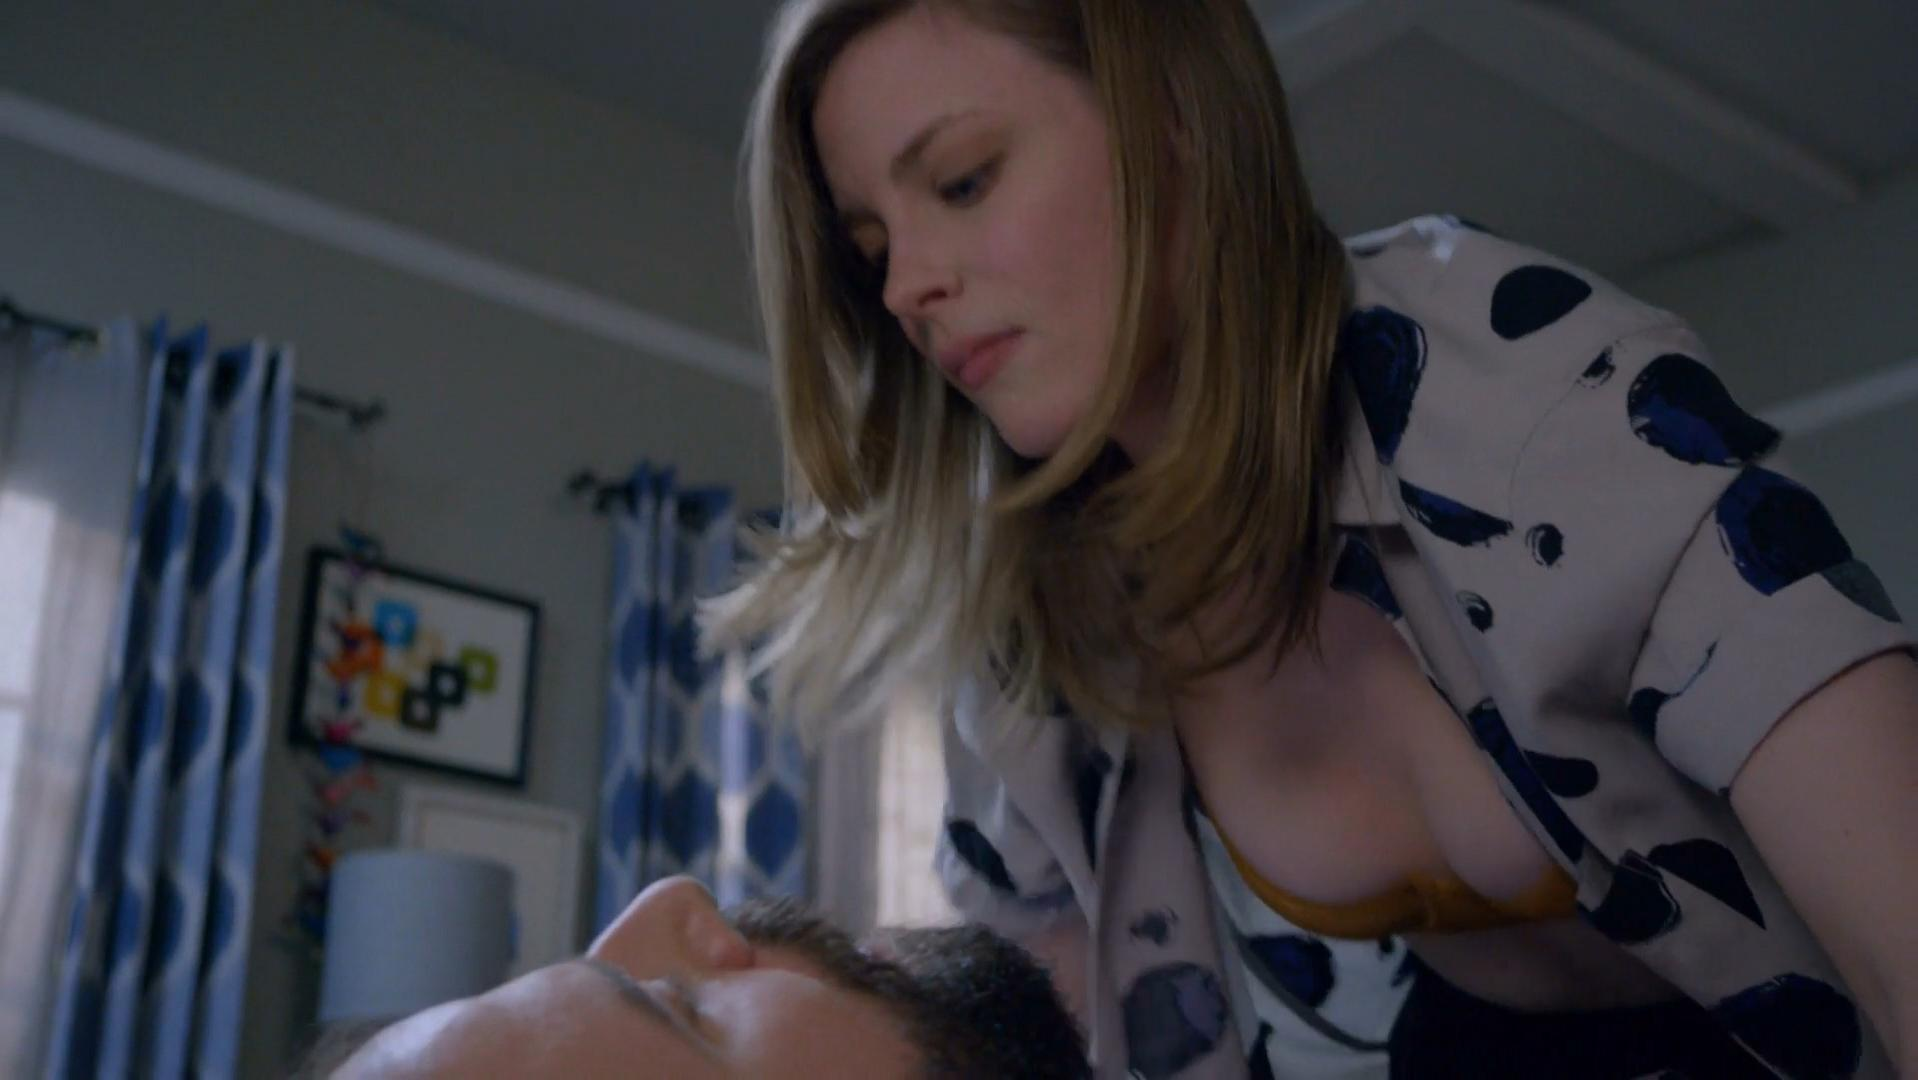 Gillian Jacobs sexy - Love s01e01-07 (2016)